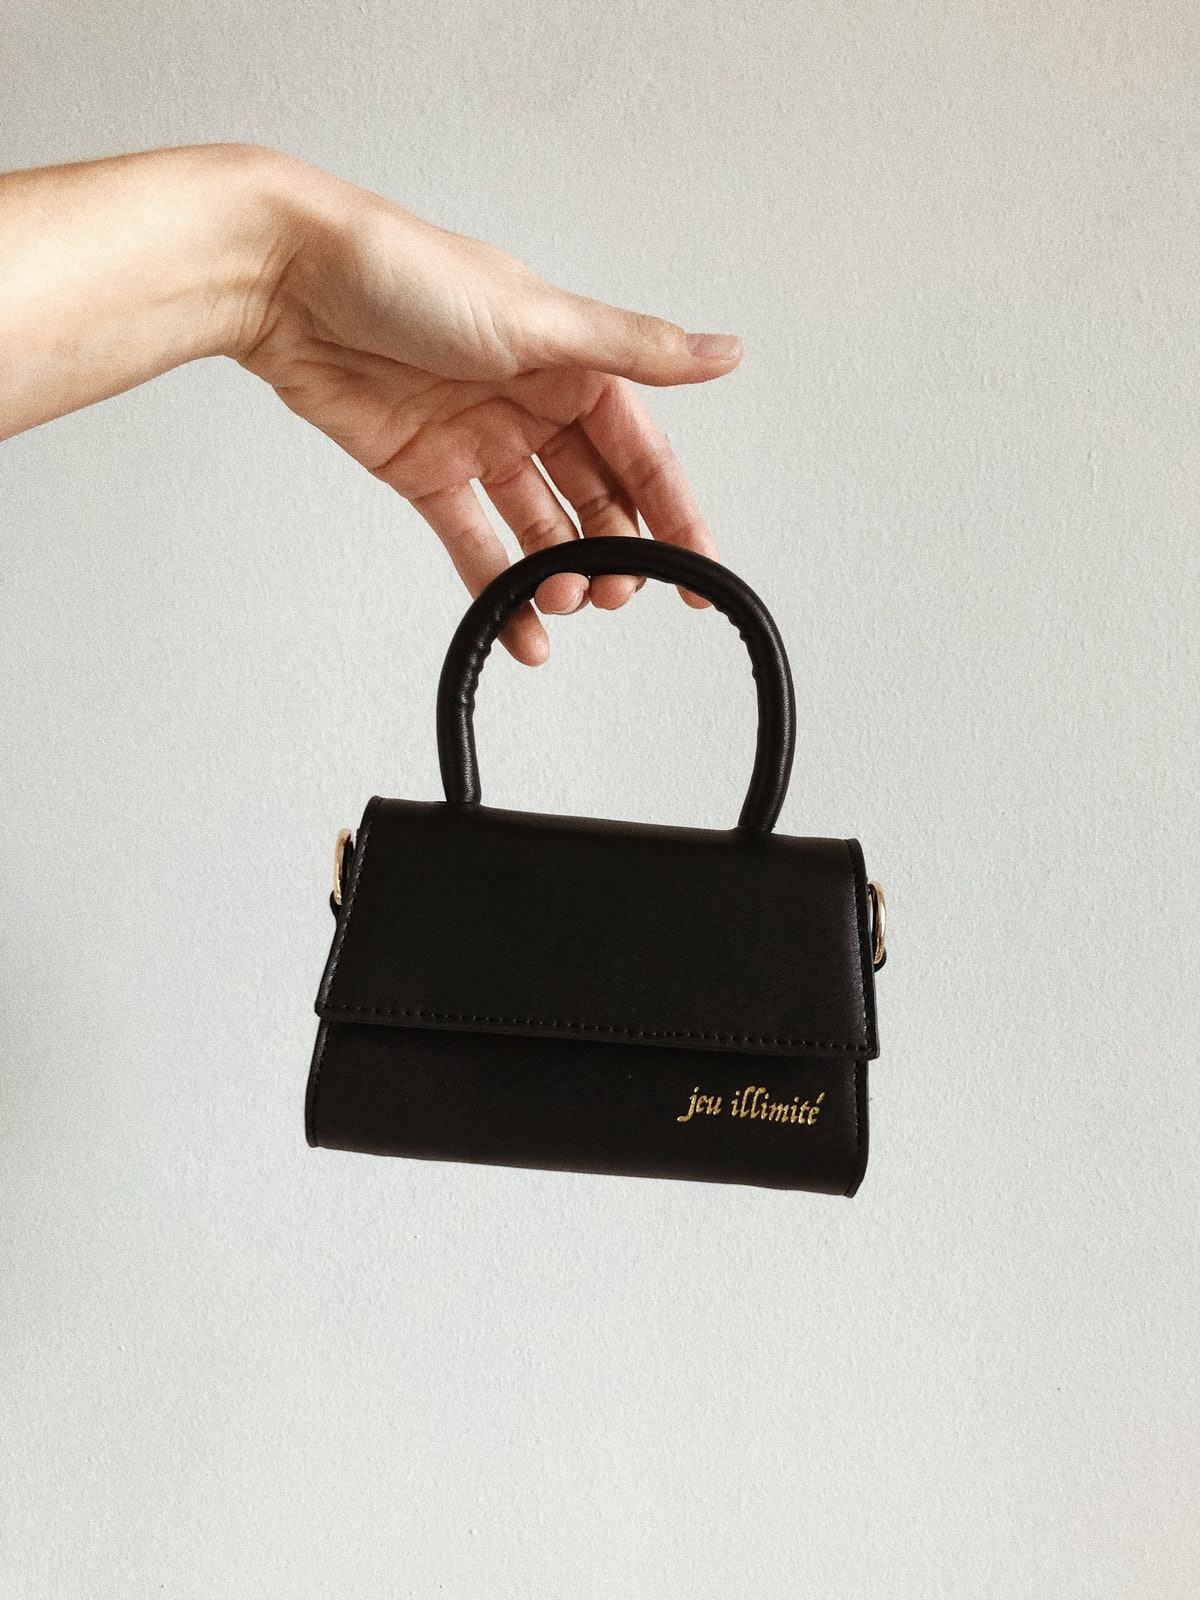 Jeu Illimite's Mini Bag Is The Perfect Party Purse For When You Just Need The Essentials